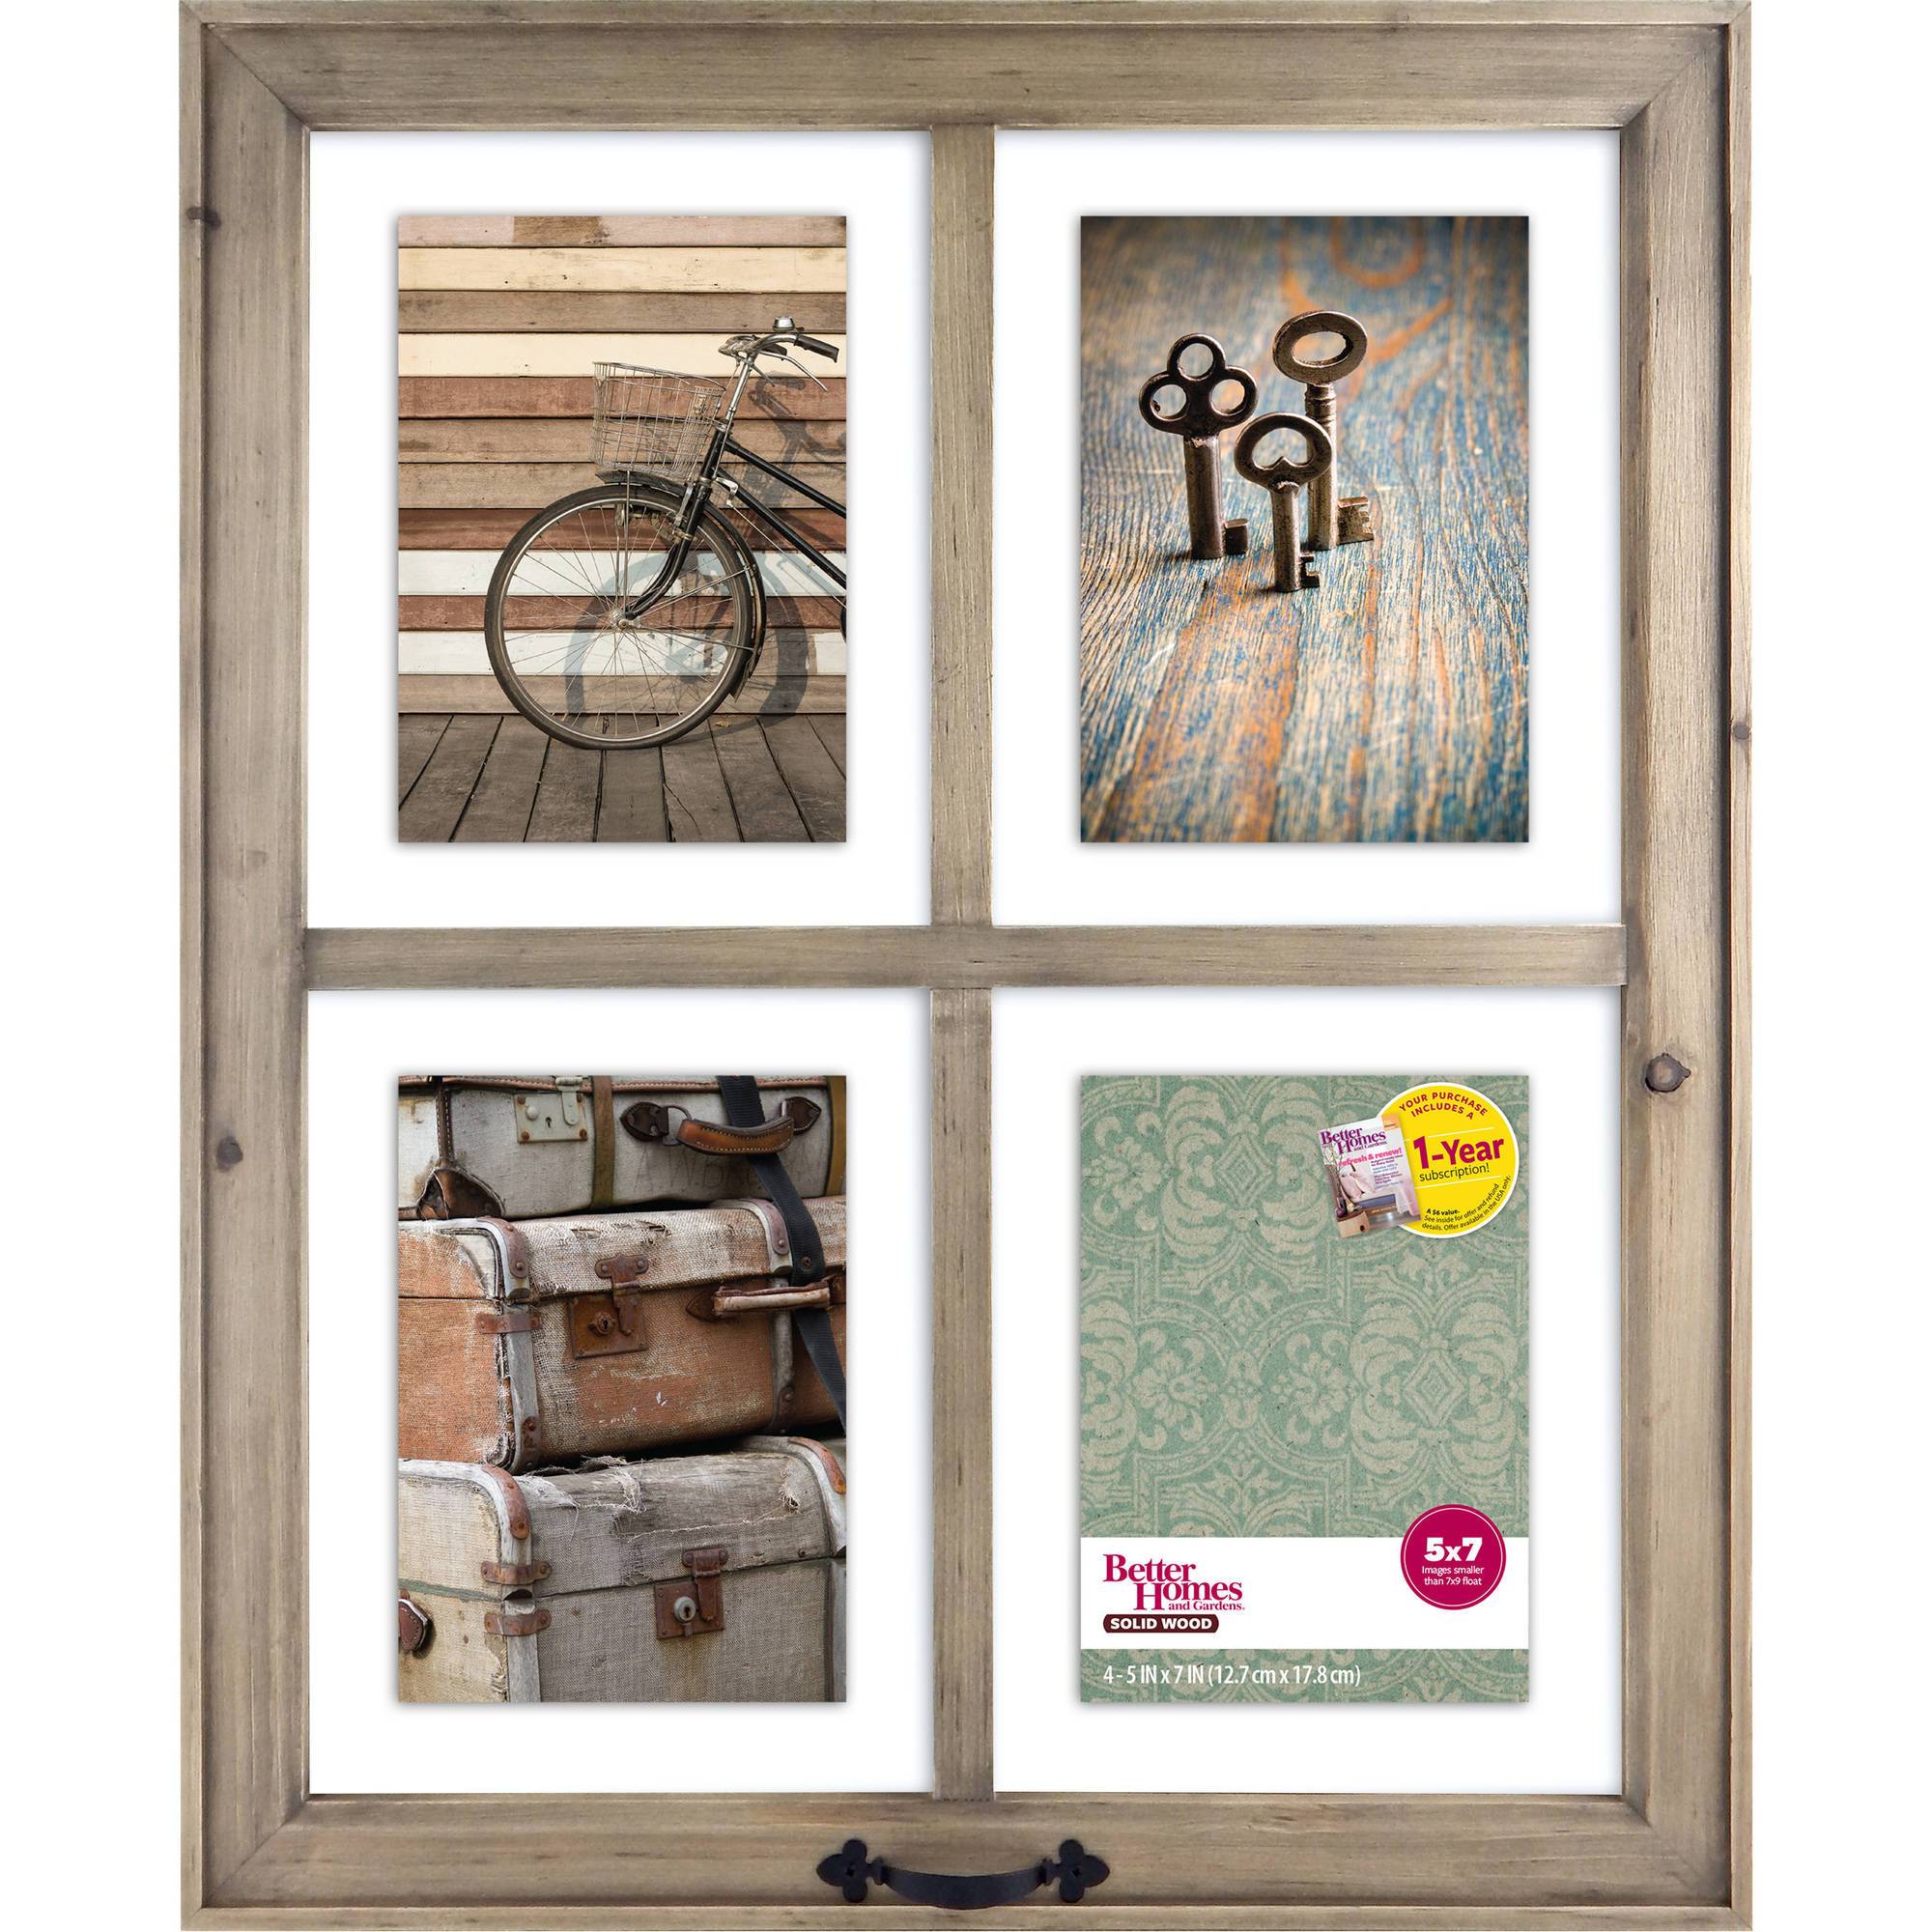 Better homes and gardens 4 opening rustic windowpane collage frame better homes and gardens 4 opening rustic windowpane collage frame walmart jeuxipadfo Choice Image